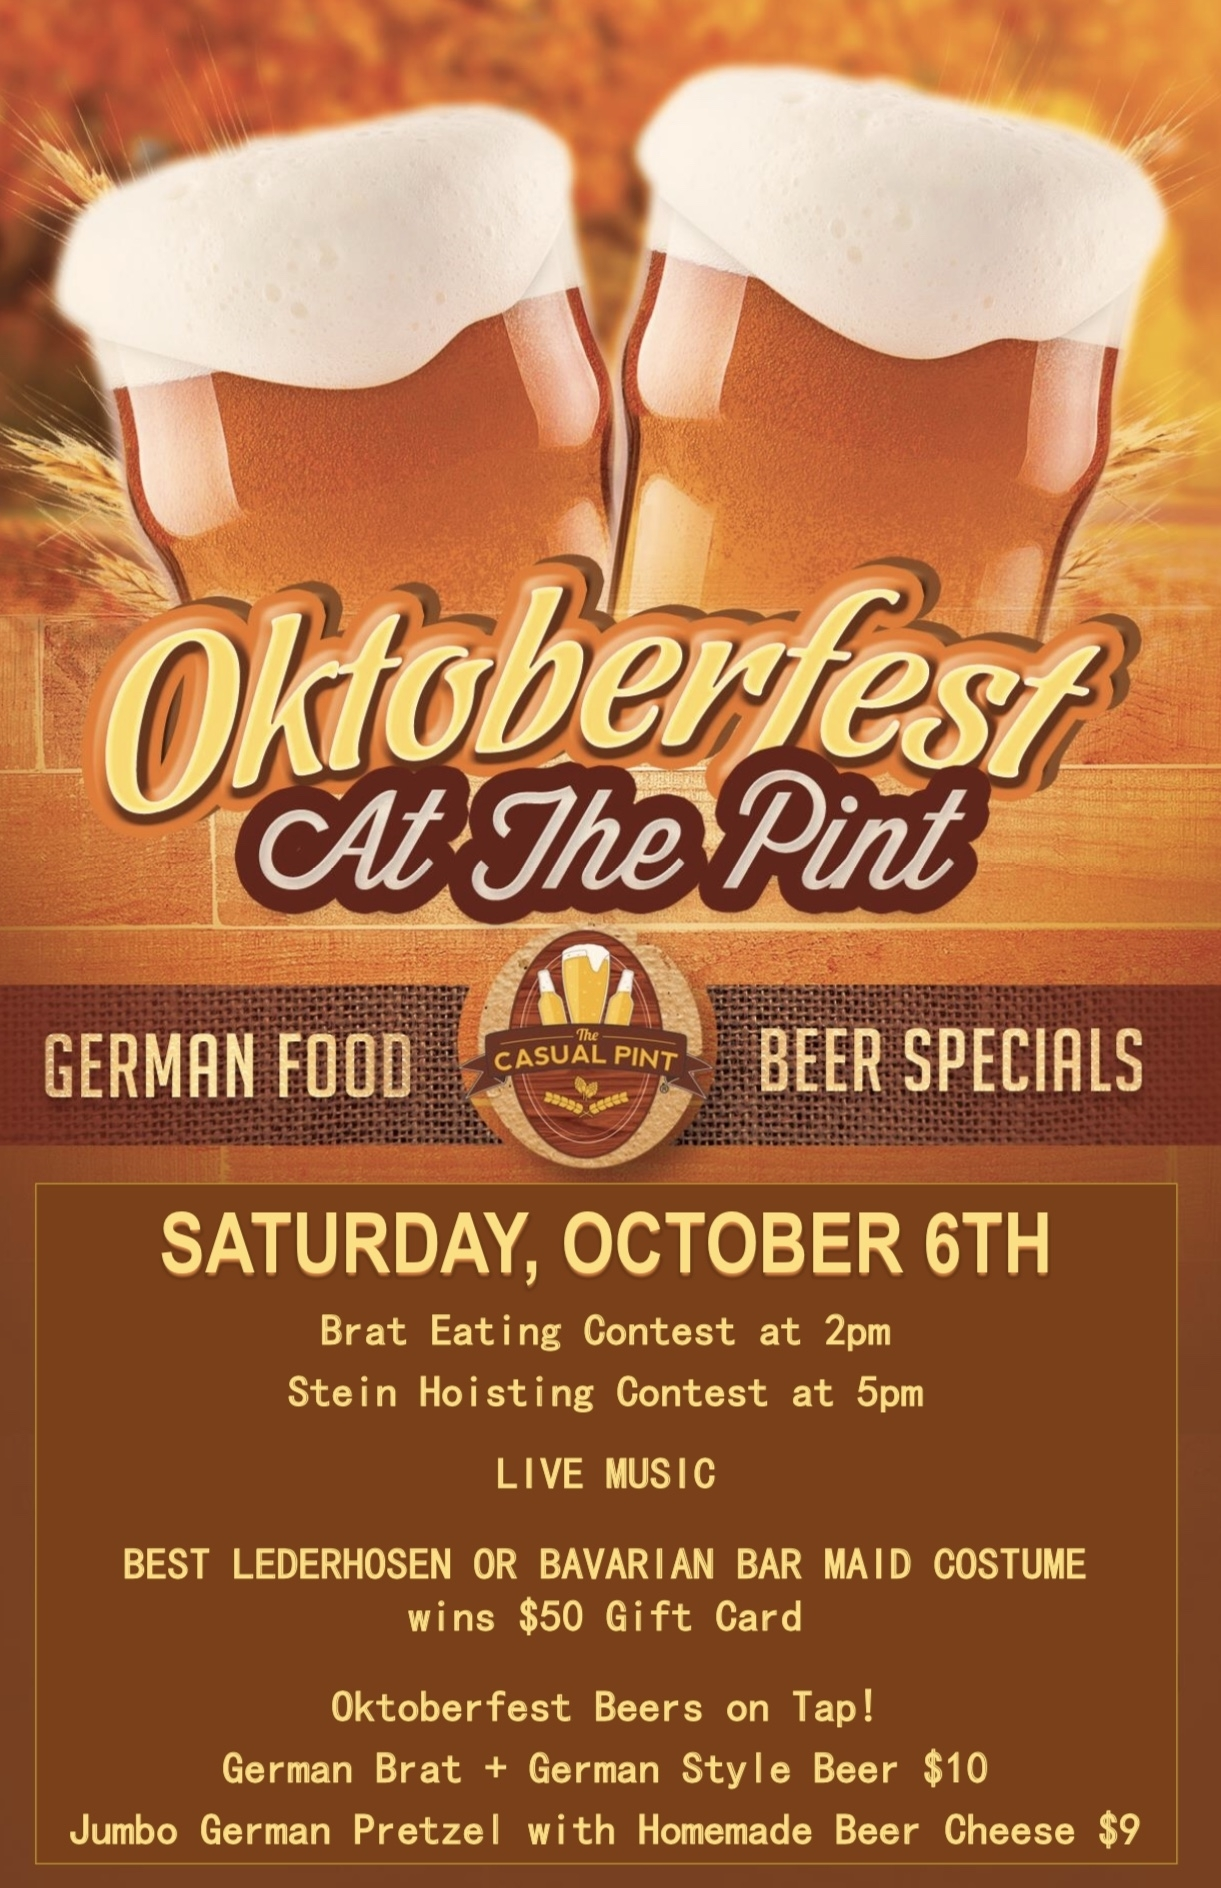 Beer Specials Oktoberfest At The Pint